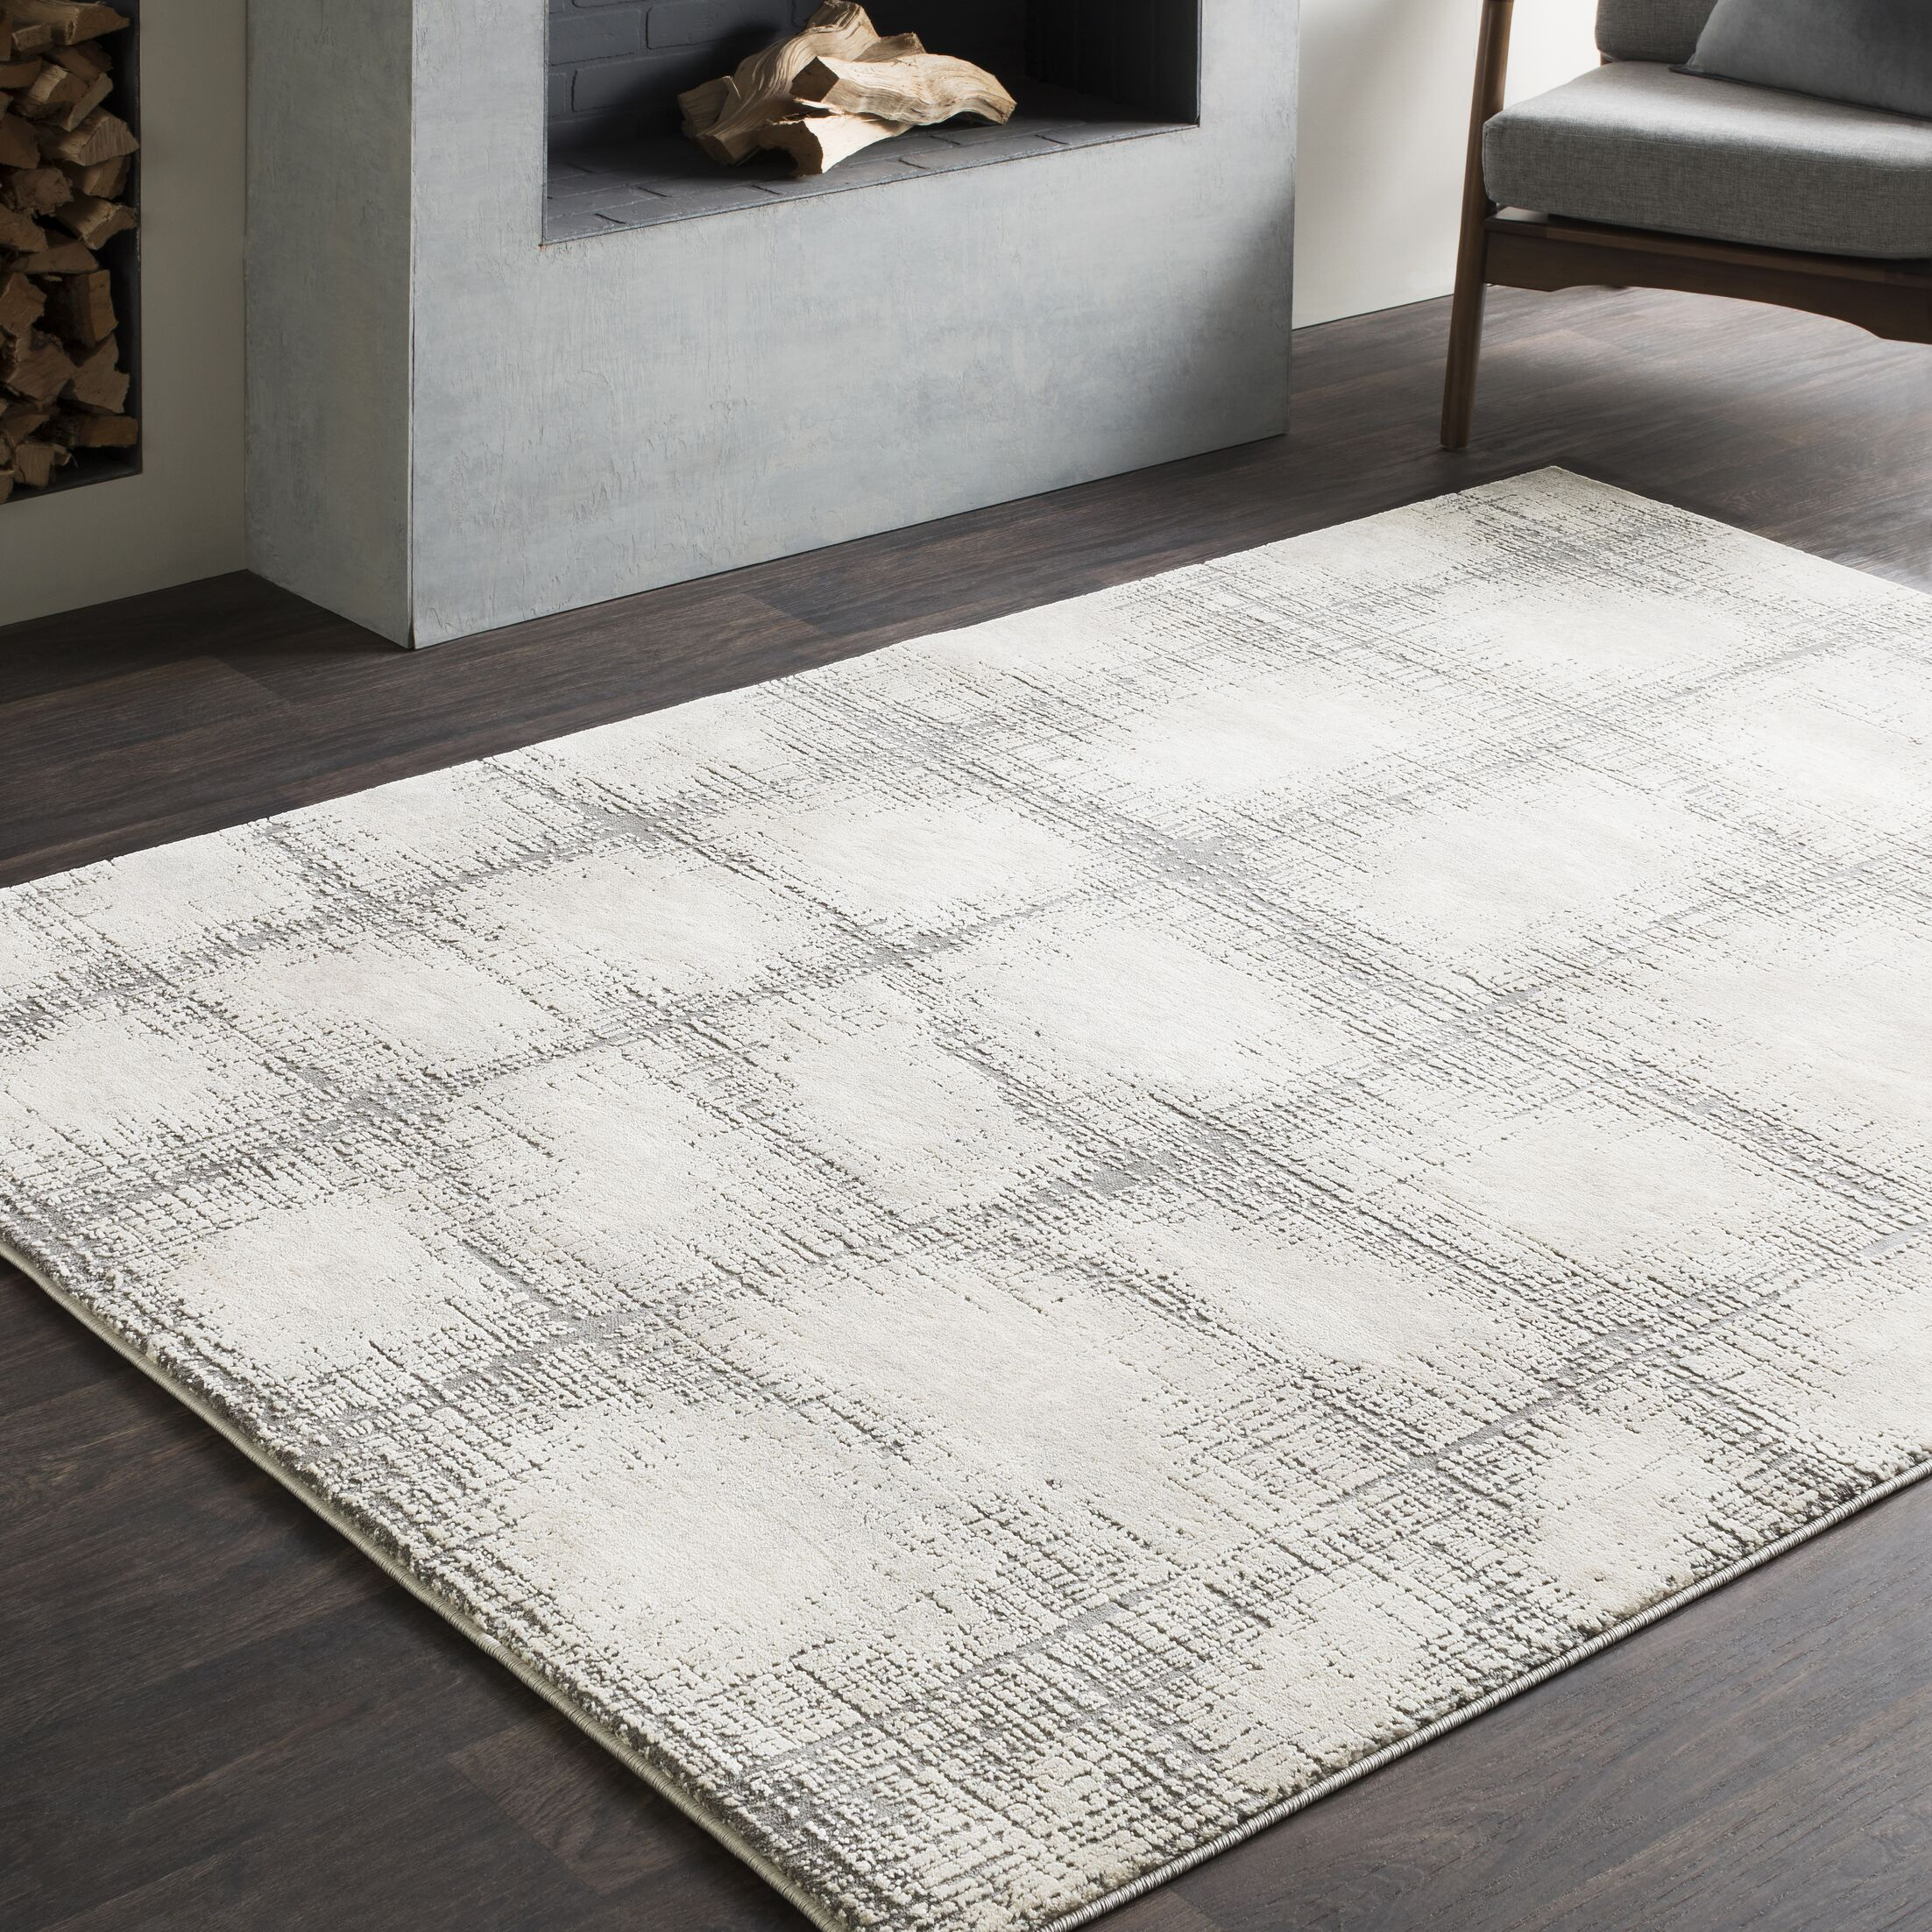 Bridgeton Distressed Modern Abstract Gray/Cream Area Rug Rug Size: Rectangle 7'10